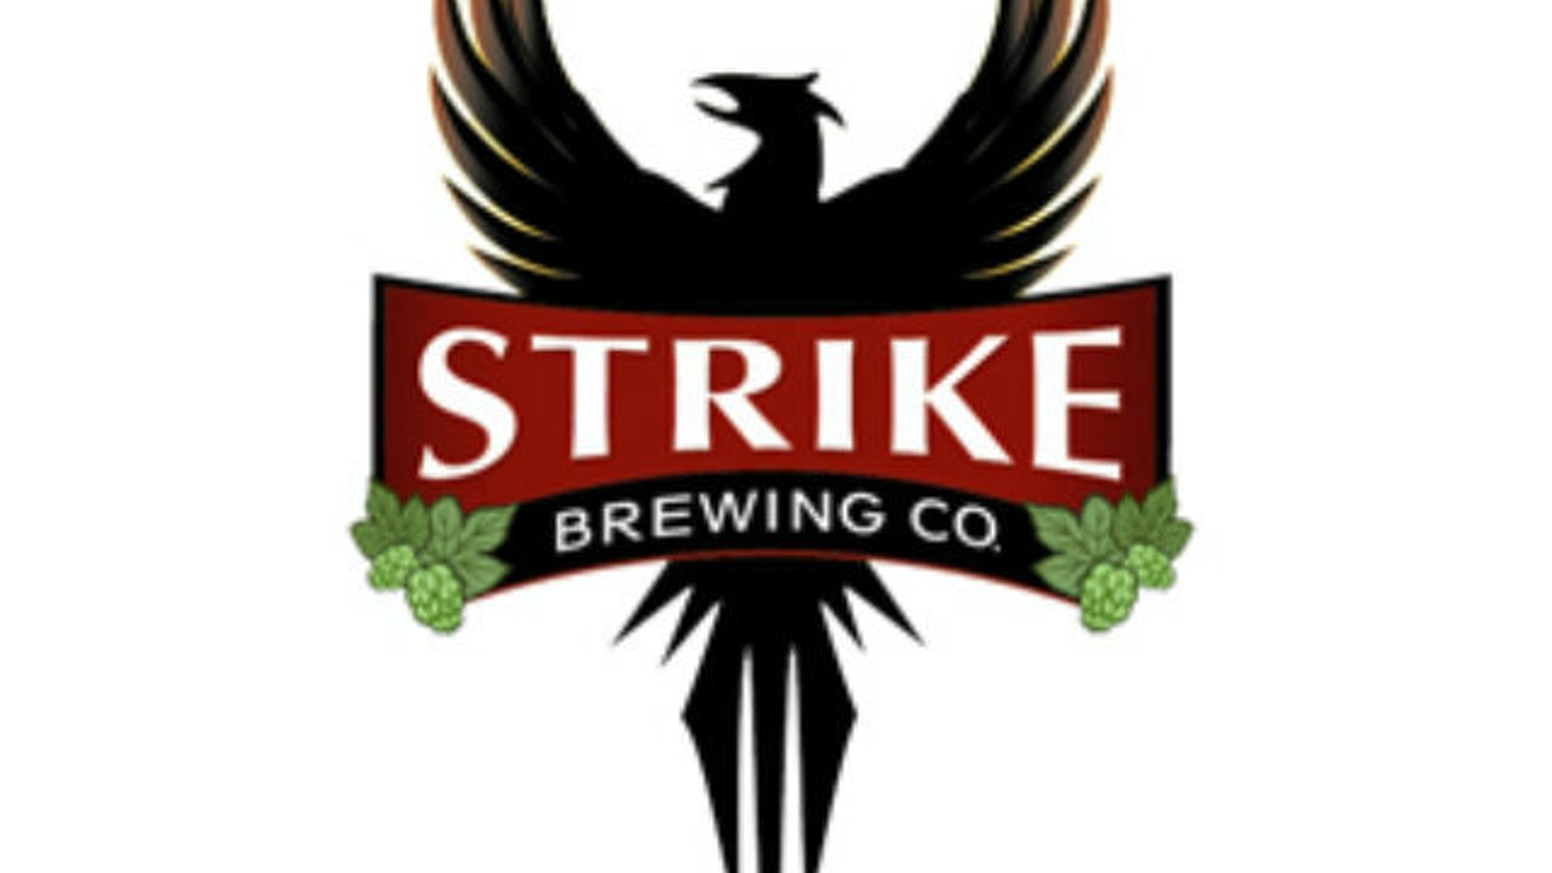 Strike Brewing Co  Is Building a Tap Room! by Strike Brewing